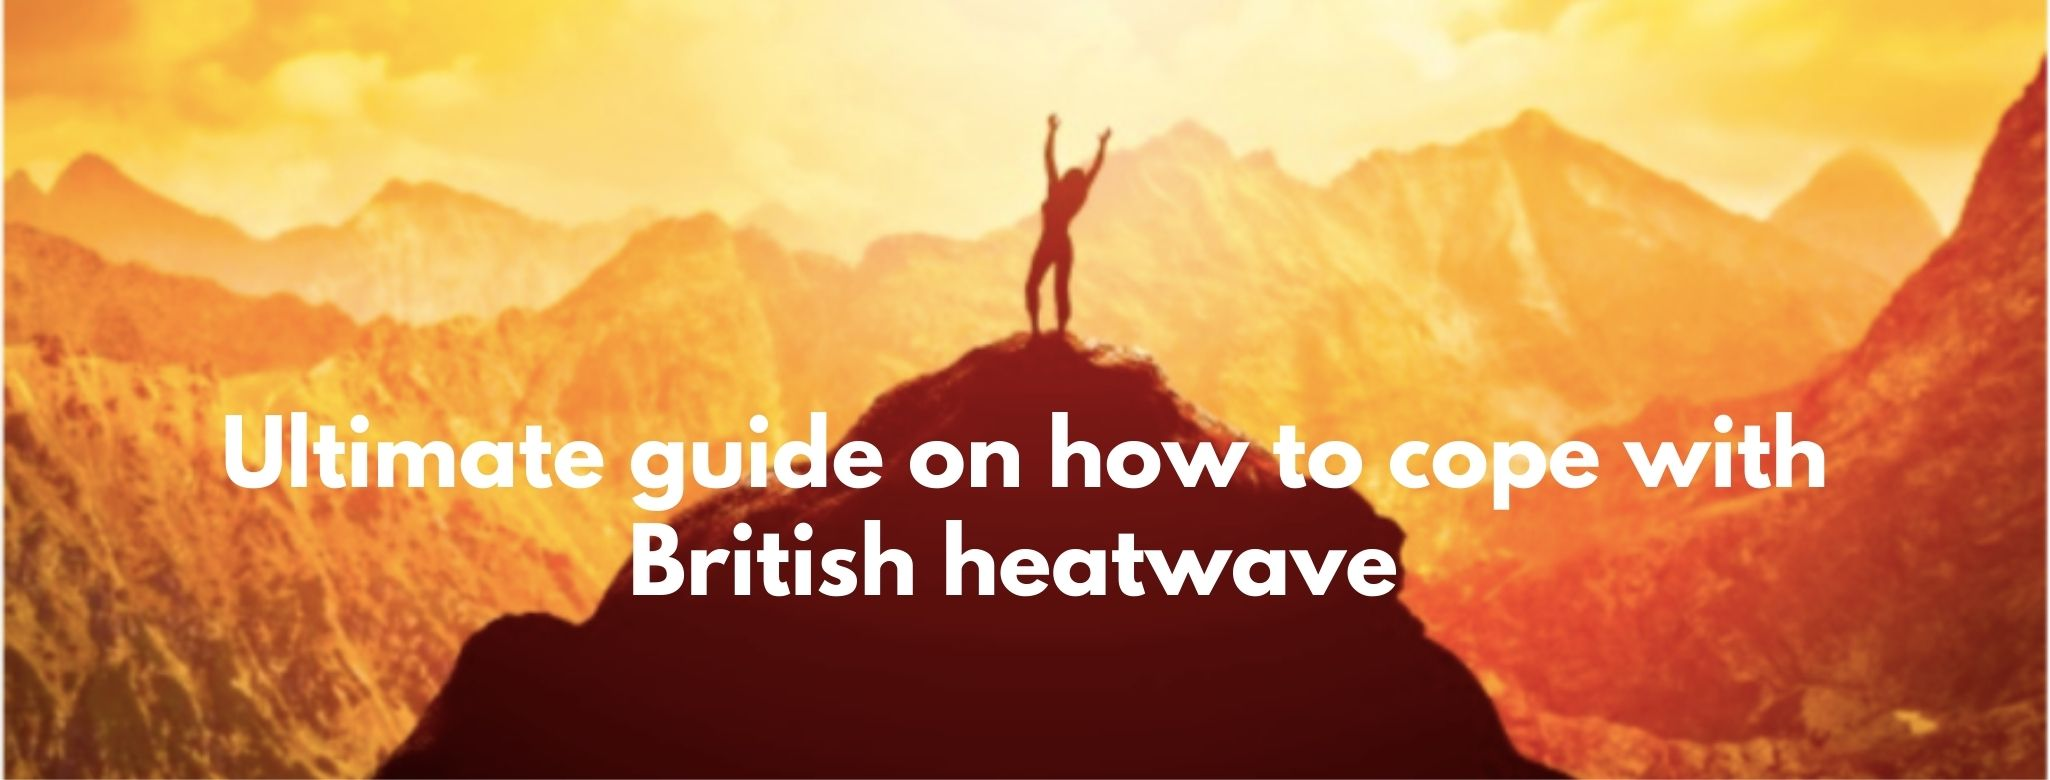 How to cope with British heatwave